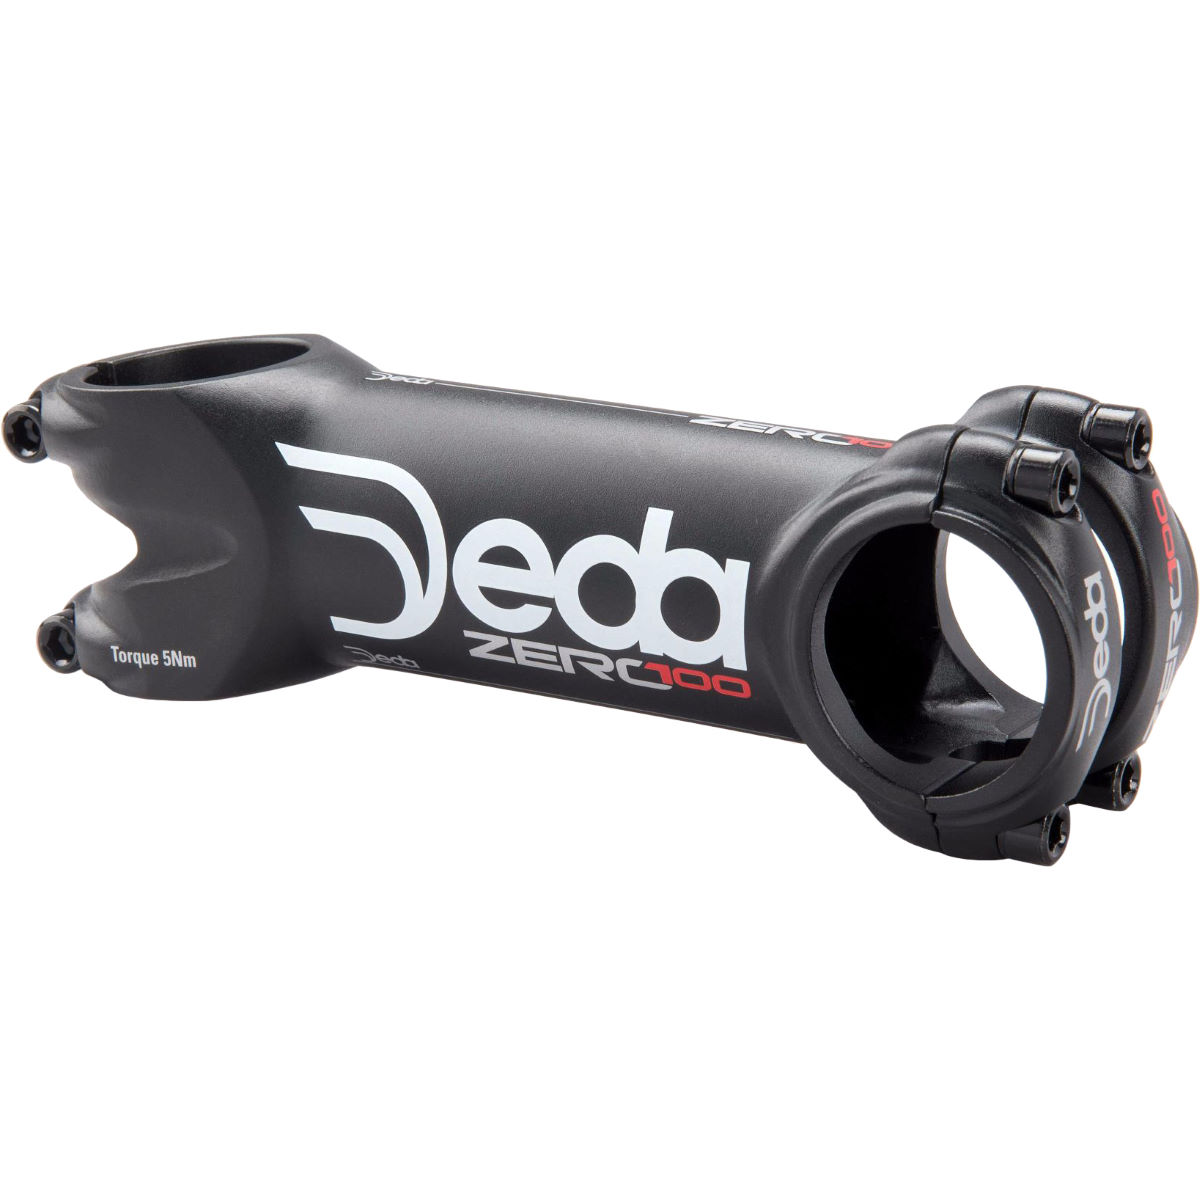 Deda Deda Zero100 Stem   Stems